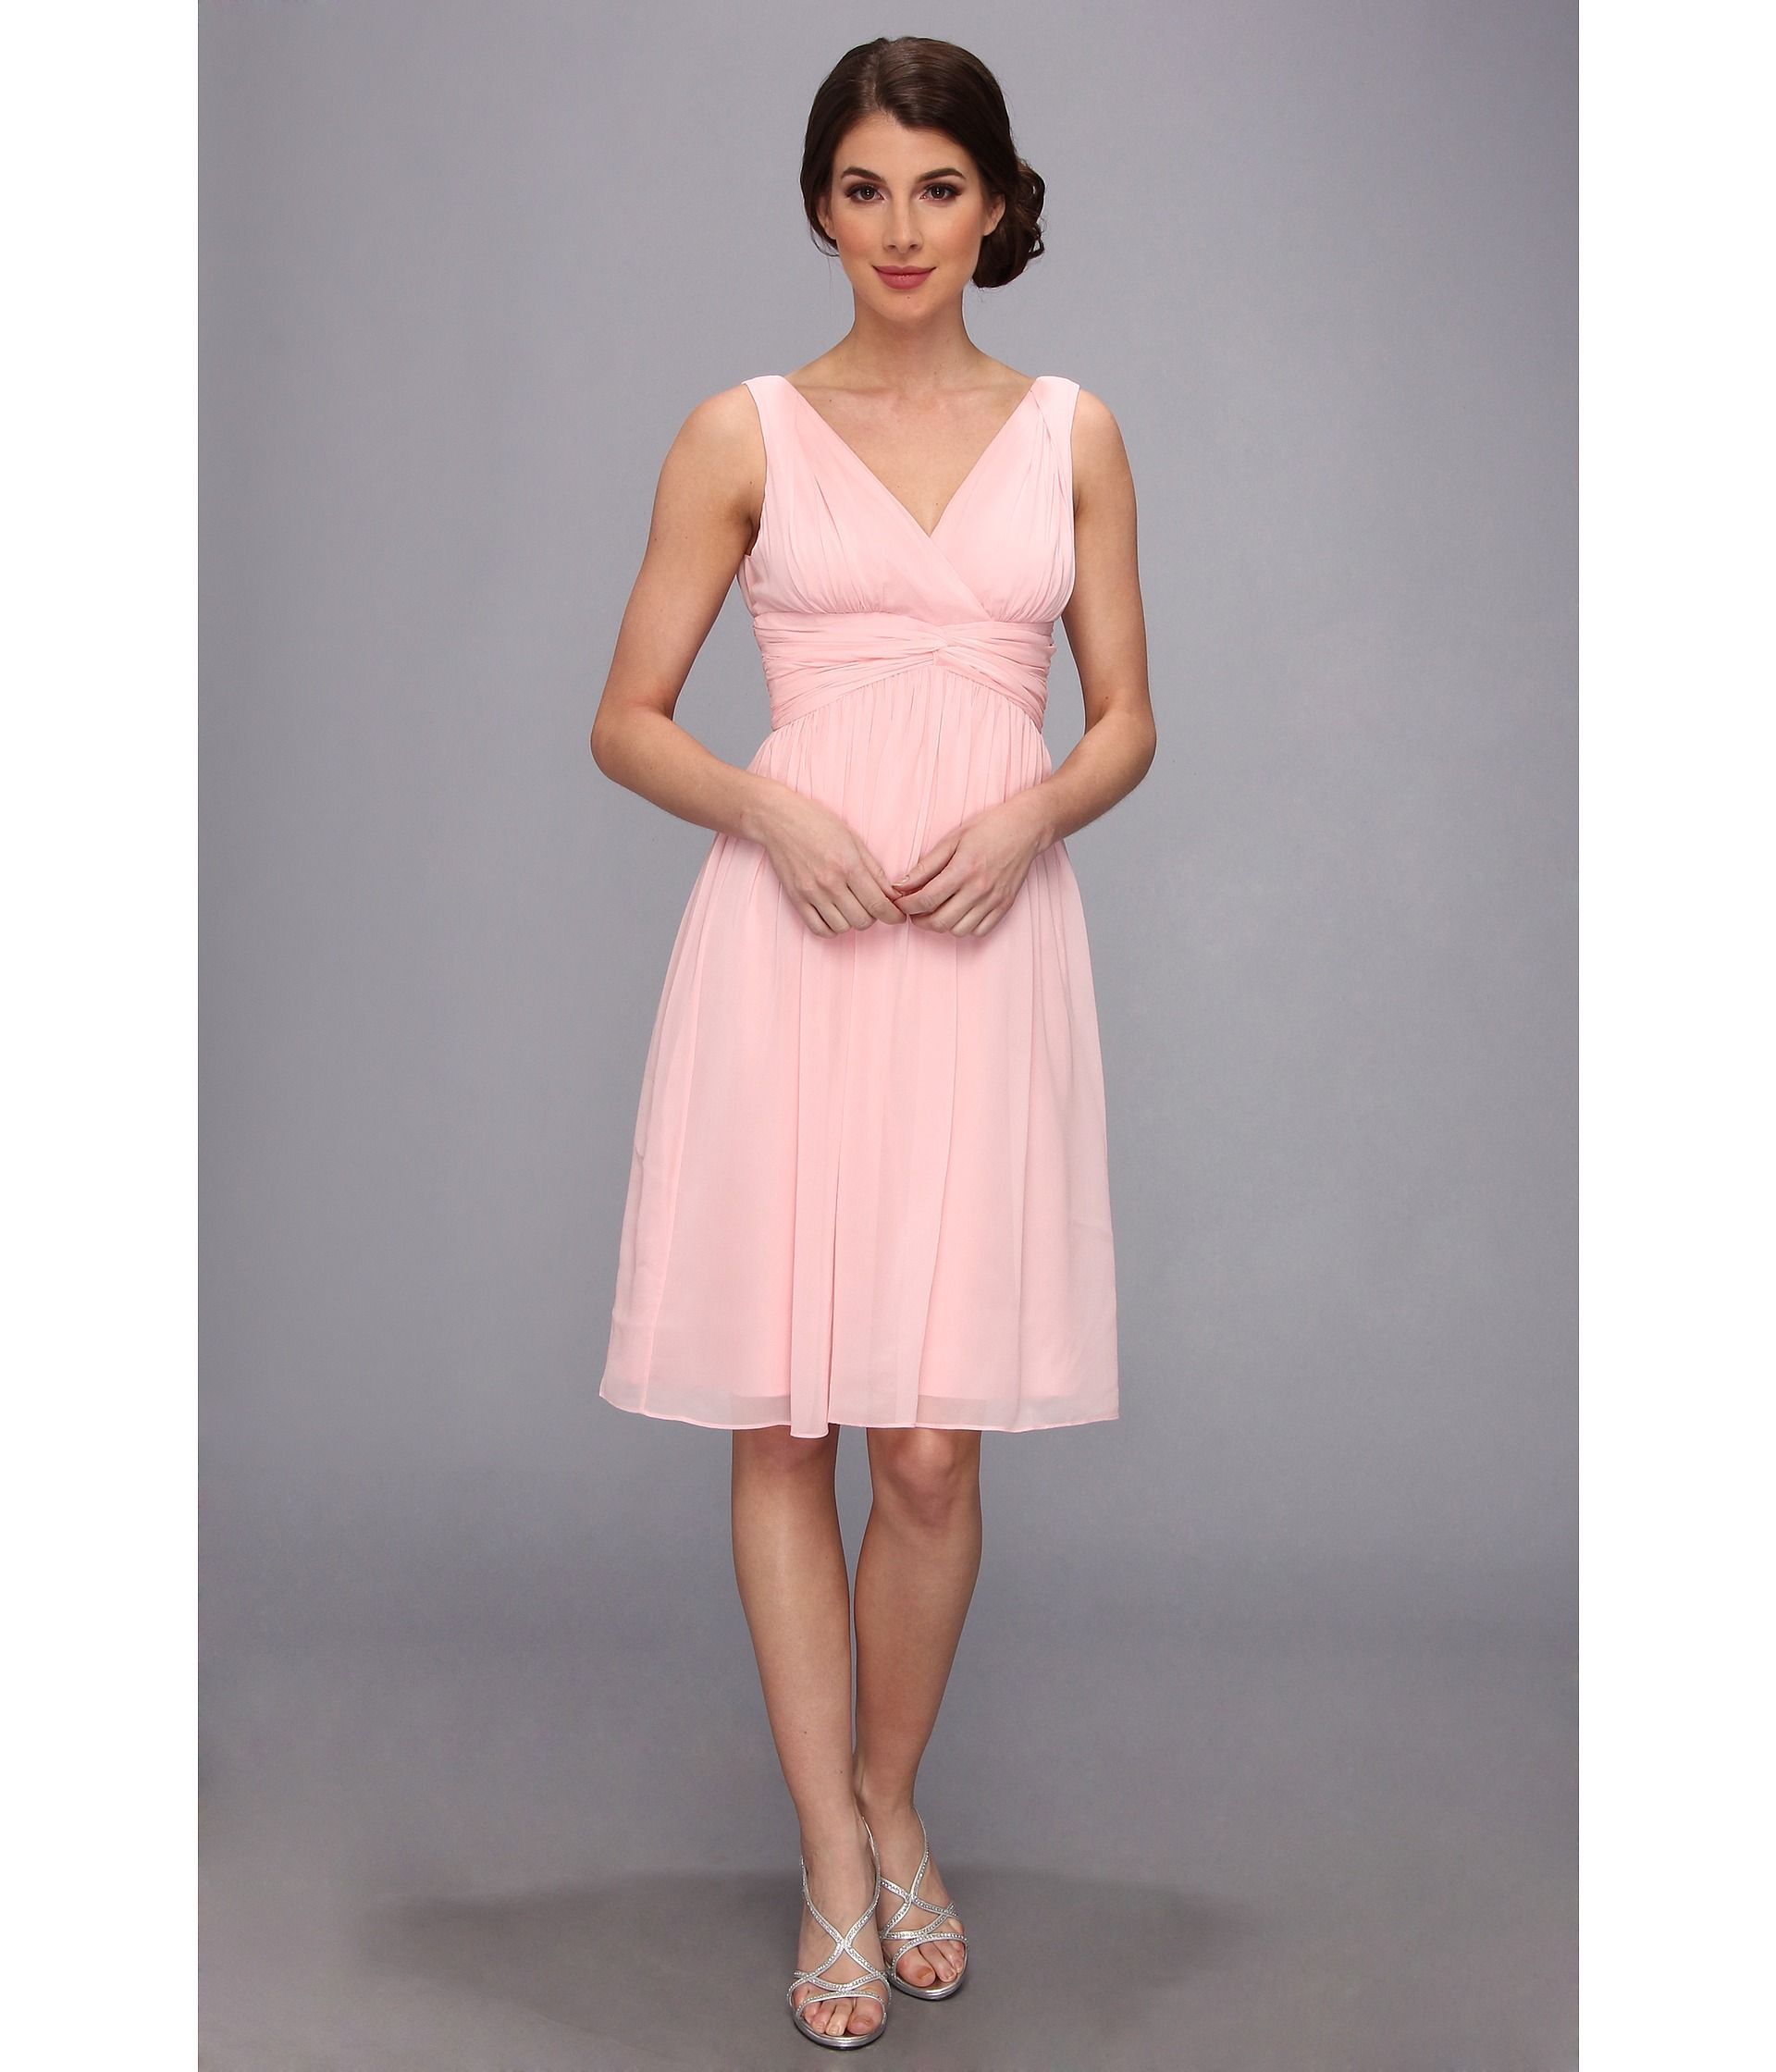 Formal pink dresses for women  Cora Skinner  cora skinner  Pinterest  Donna morgan Chiffon